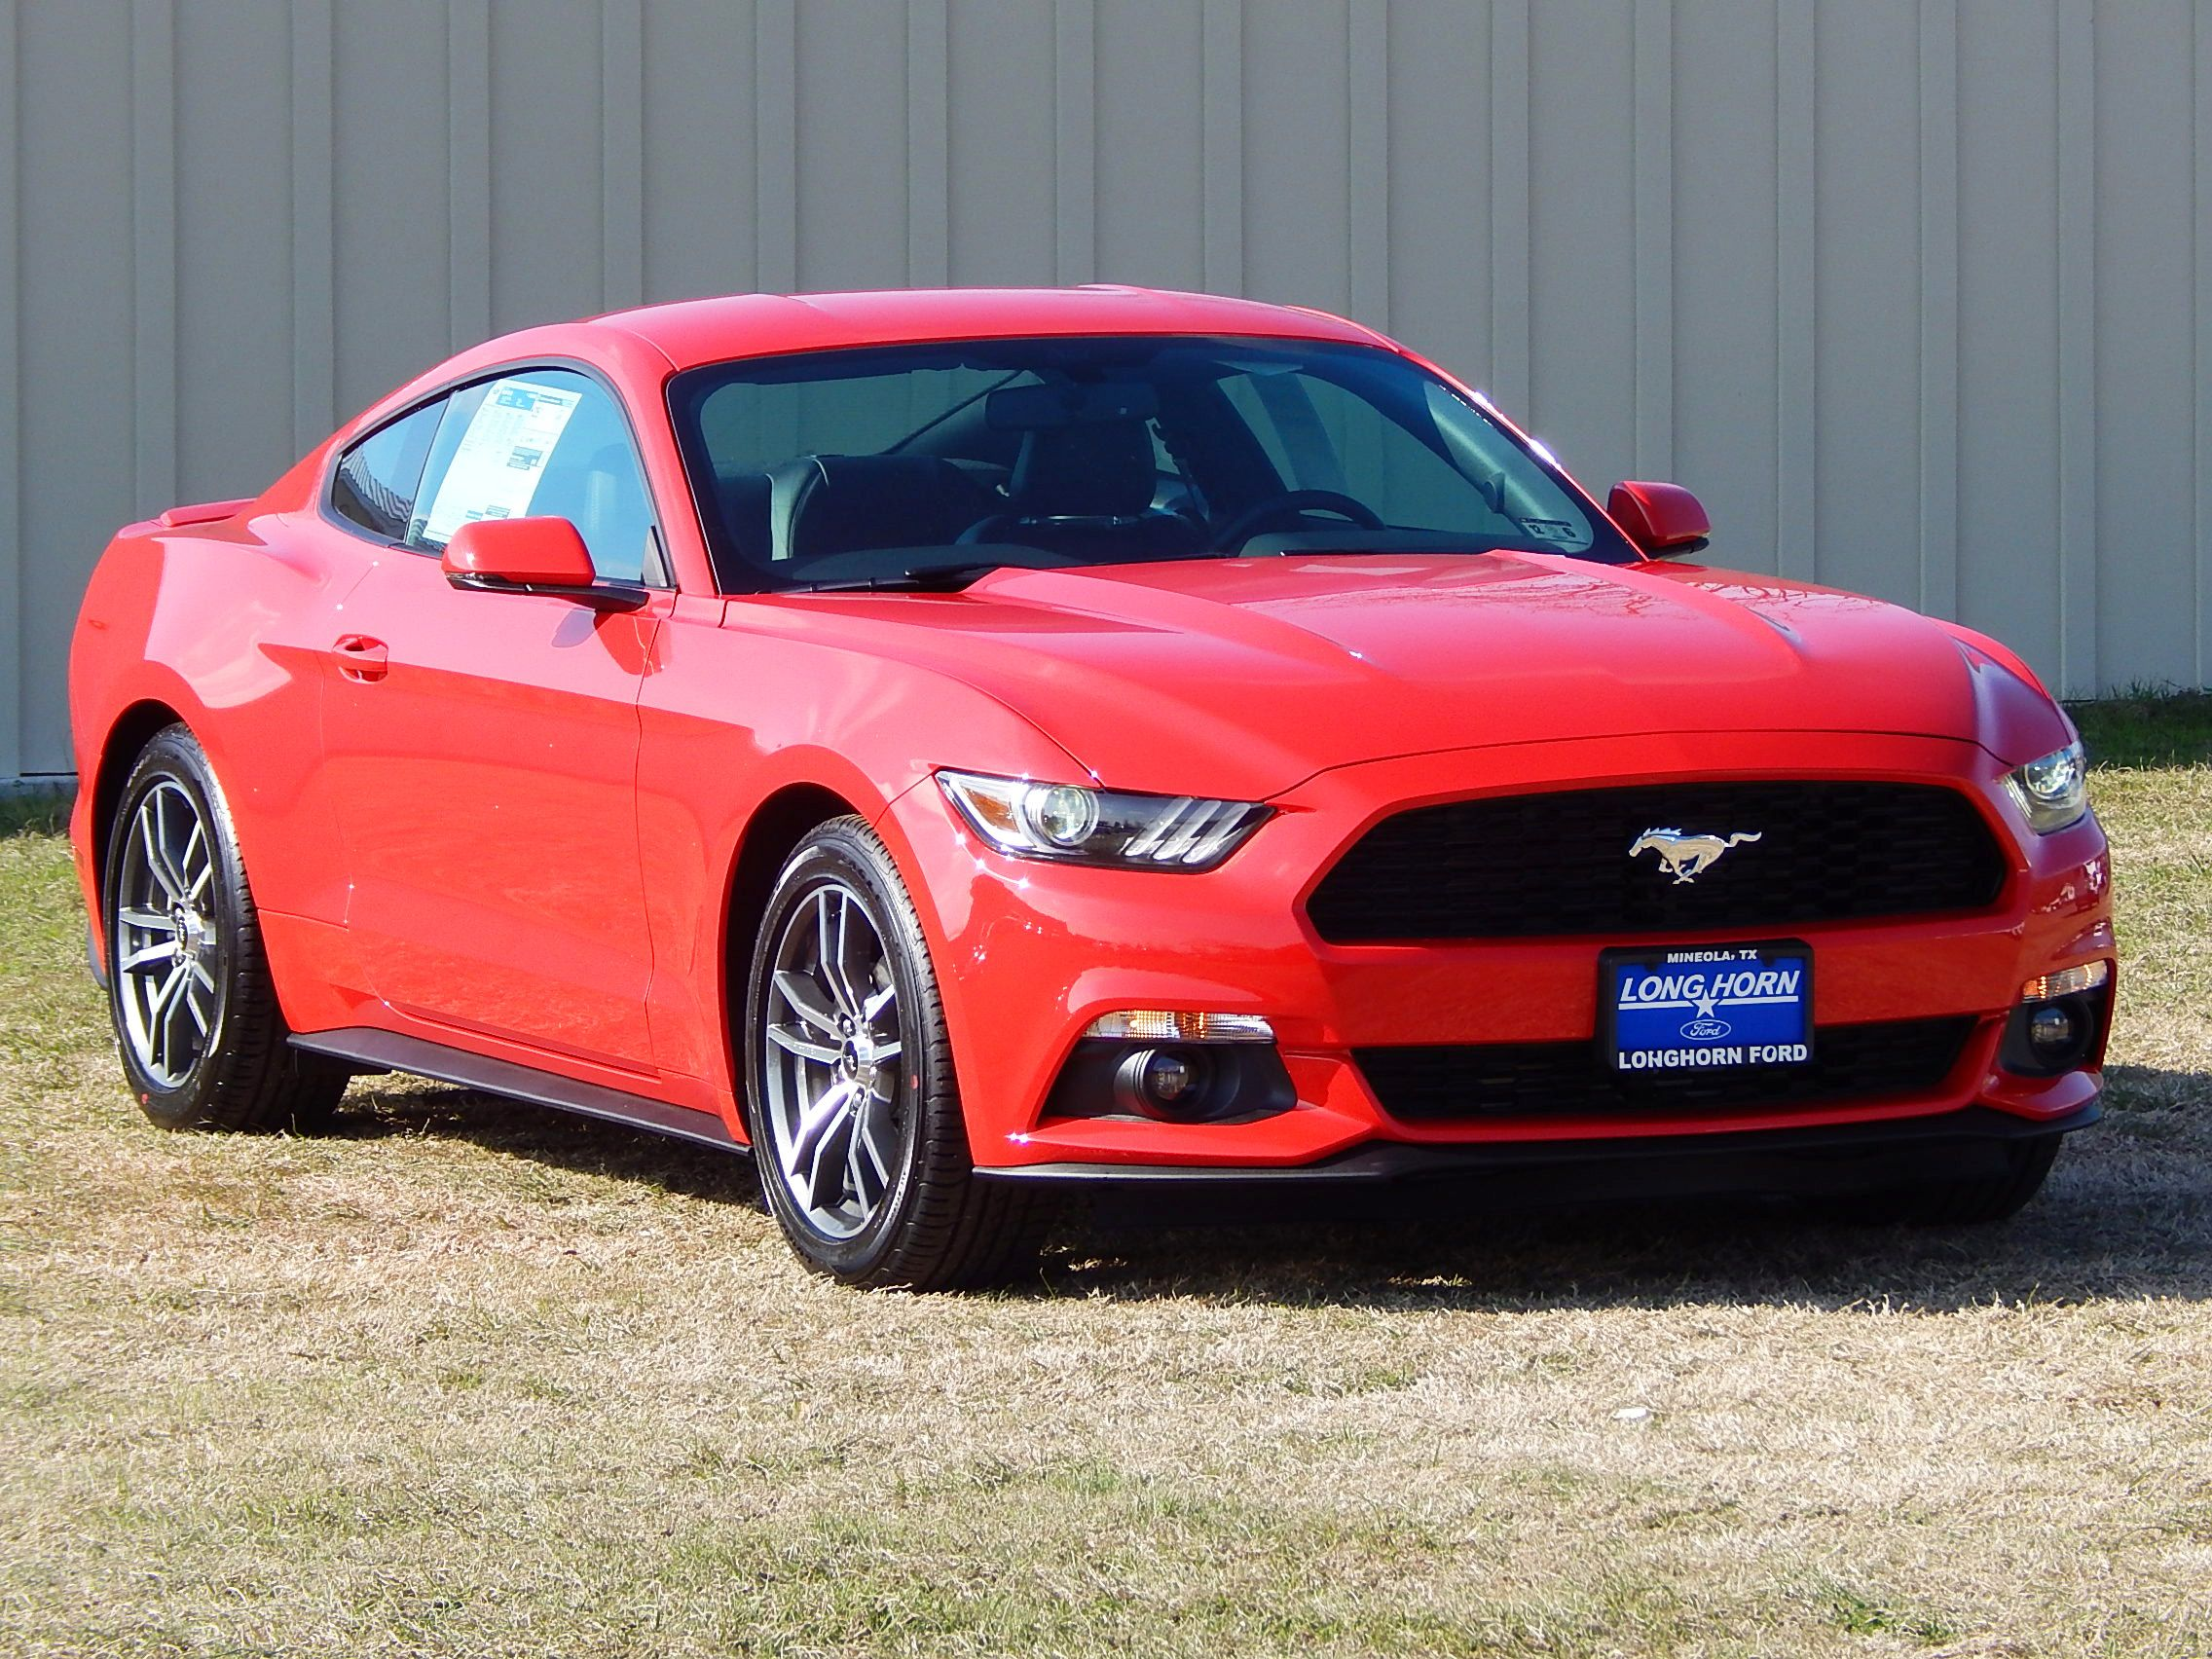 2015 Ford Mustang Ecoboost Premium In Race Red Mustang Ford Mustang Ecoboost Mustang Ecoboost Ford Mustang